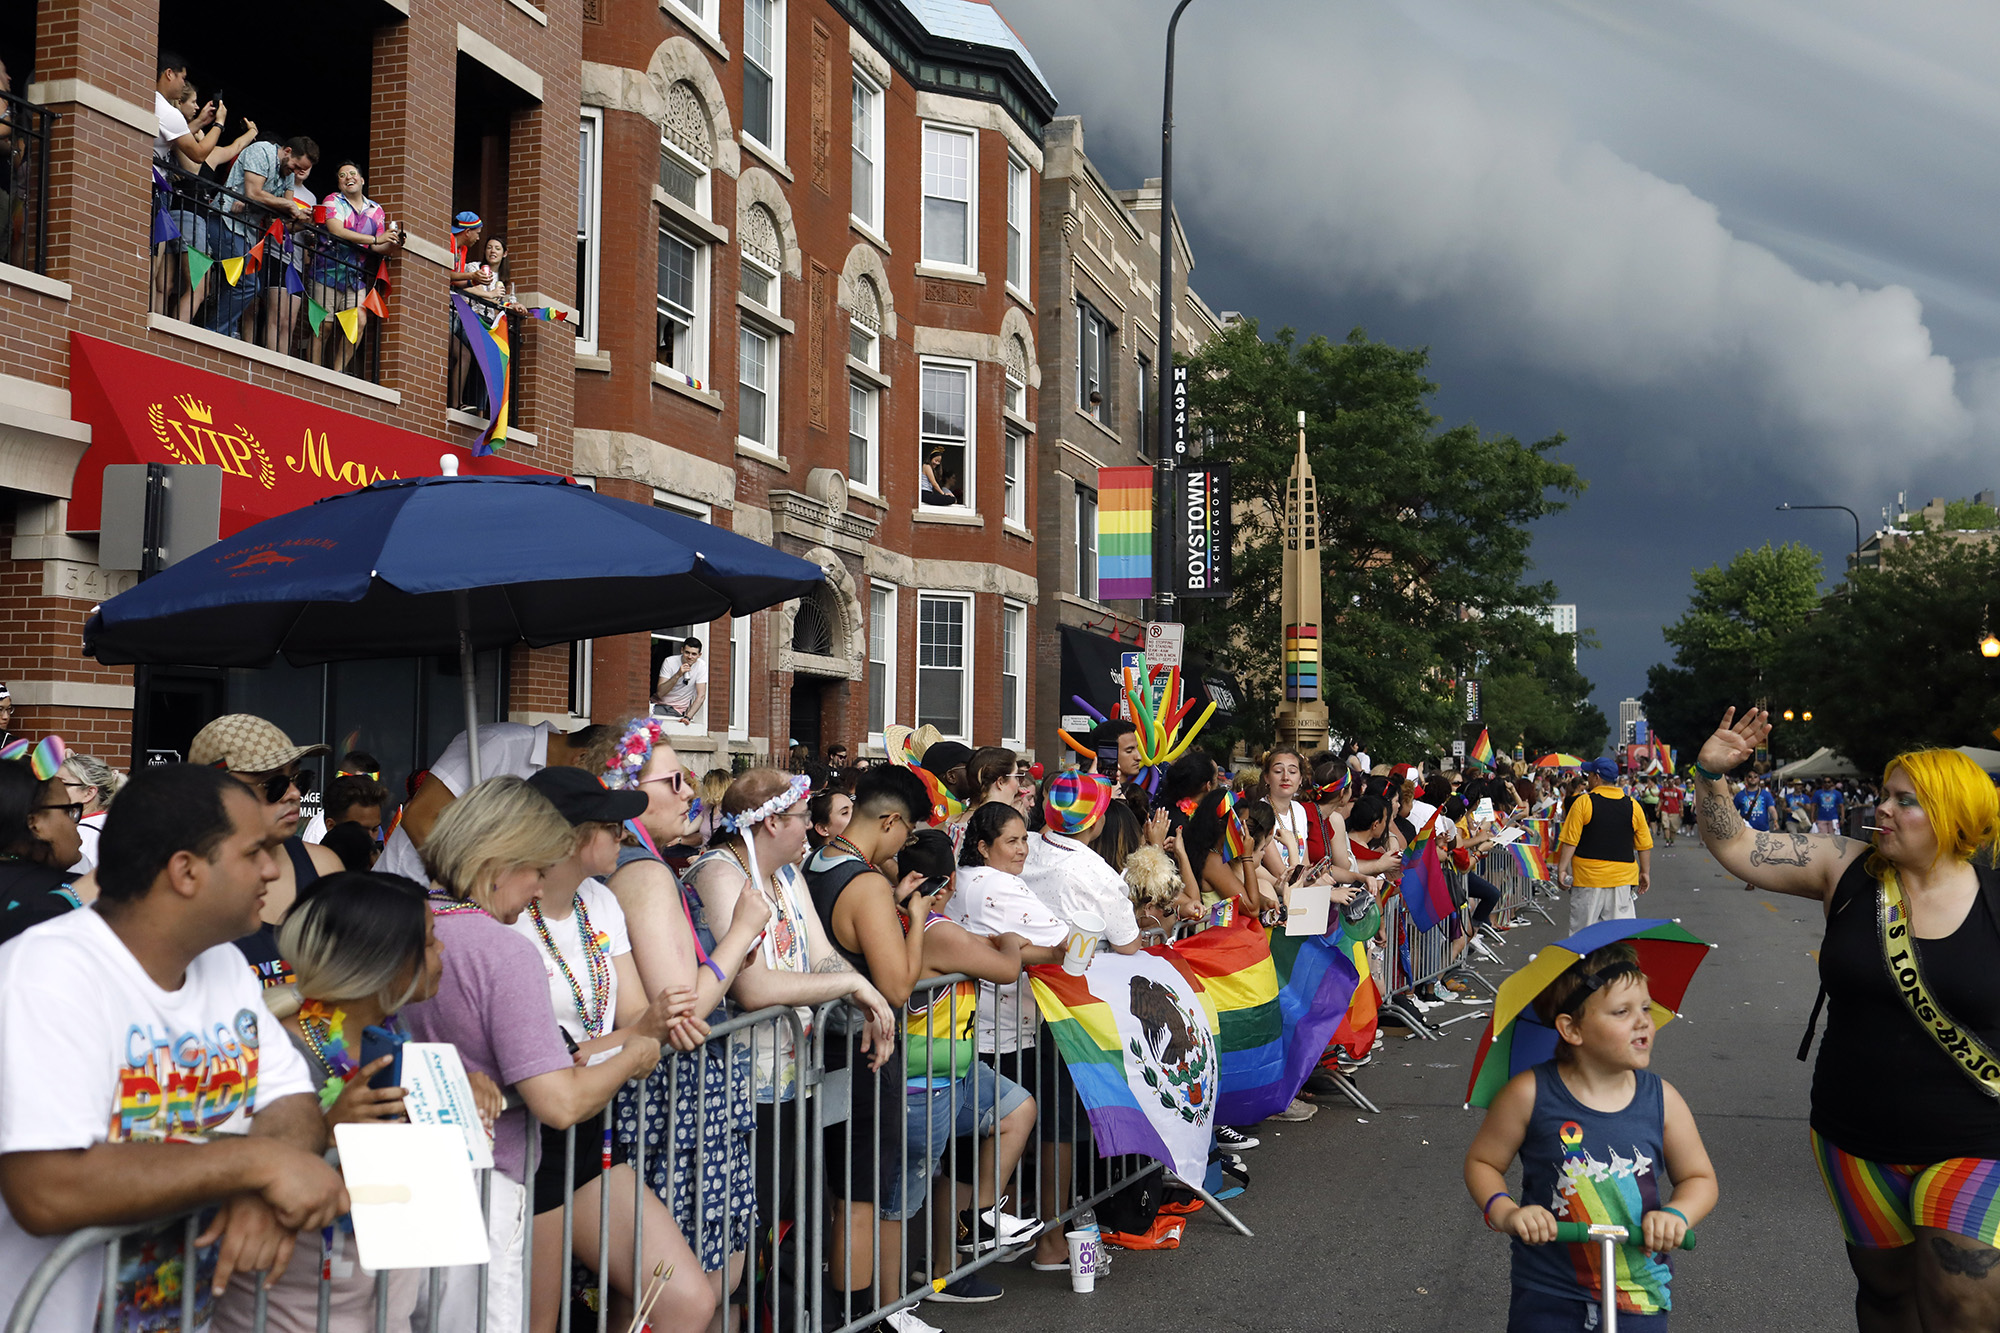 The best photos from Sunday's weather-shortened Chicago Pride Parade